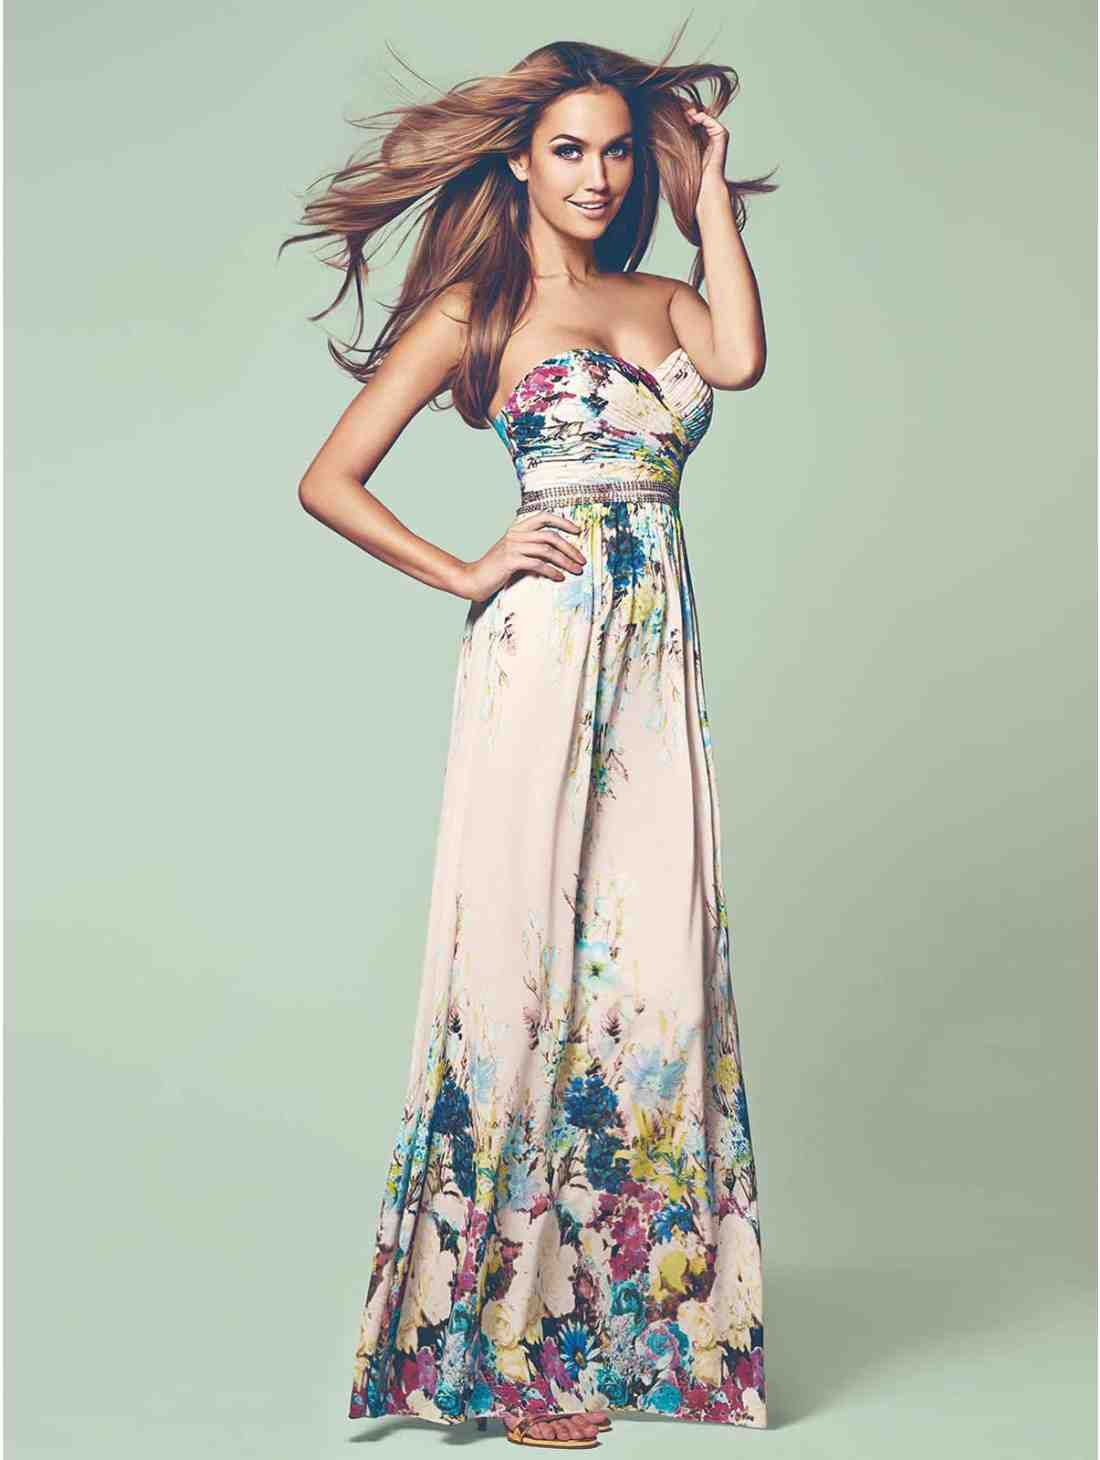 The Most Perfect Dress For A Summer Wedding Floral Print Embellished Maxi Dress Jane Norman Maxi Dress Maxi Dress Wedding Guest Embellished Maxi Dress